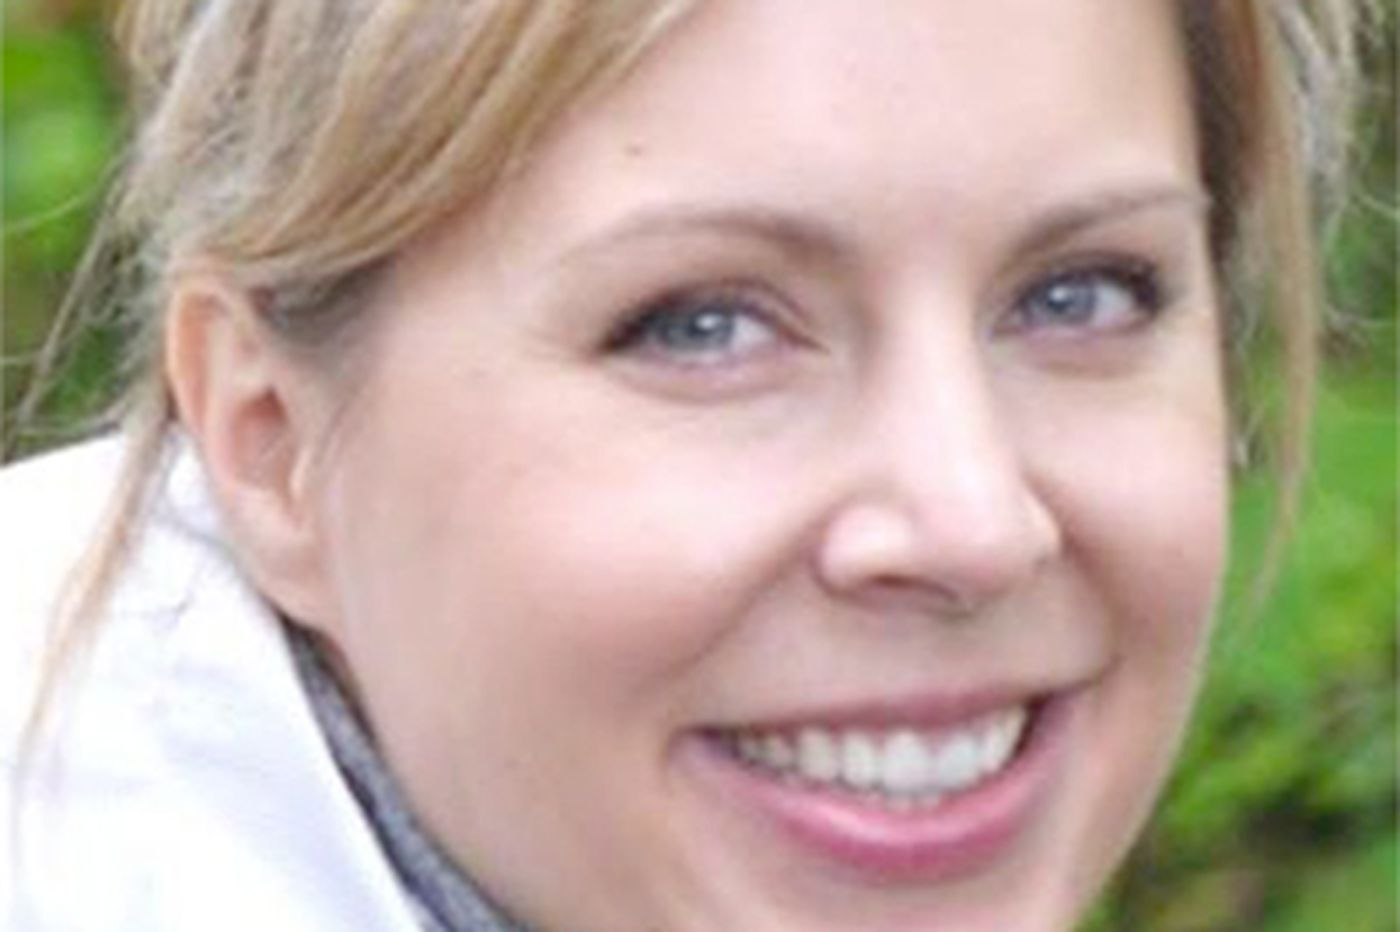 Police search for Oregon mom who vanished while running errands